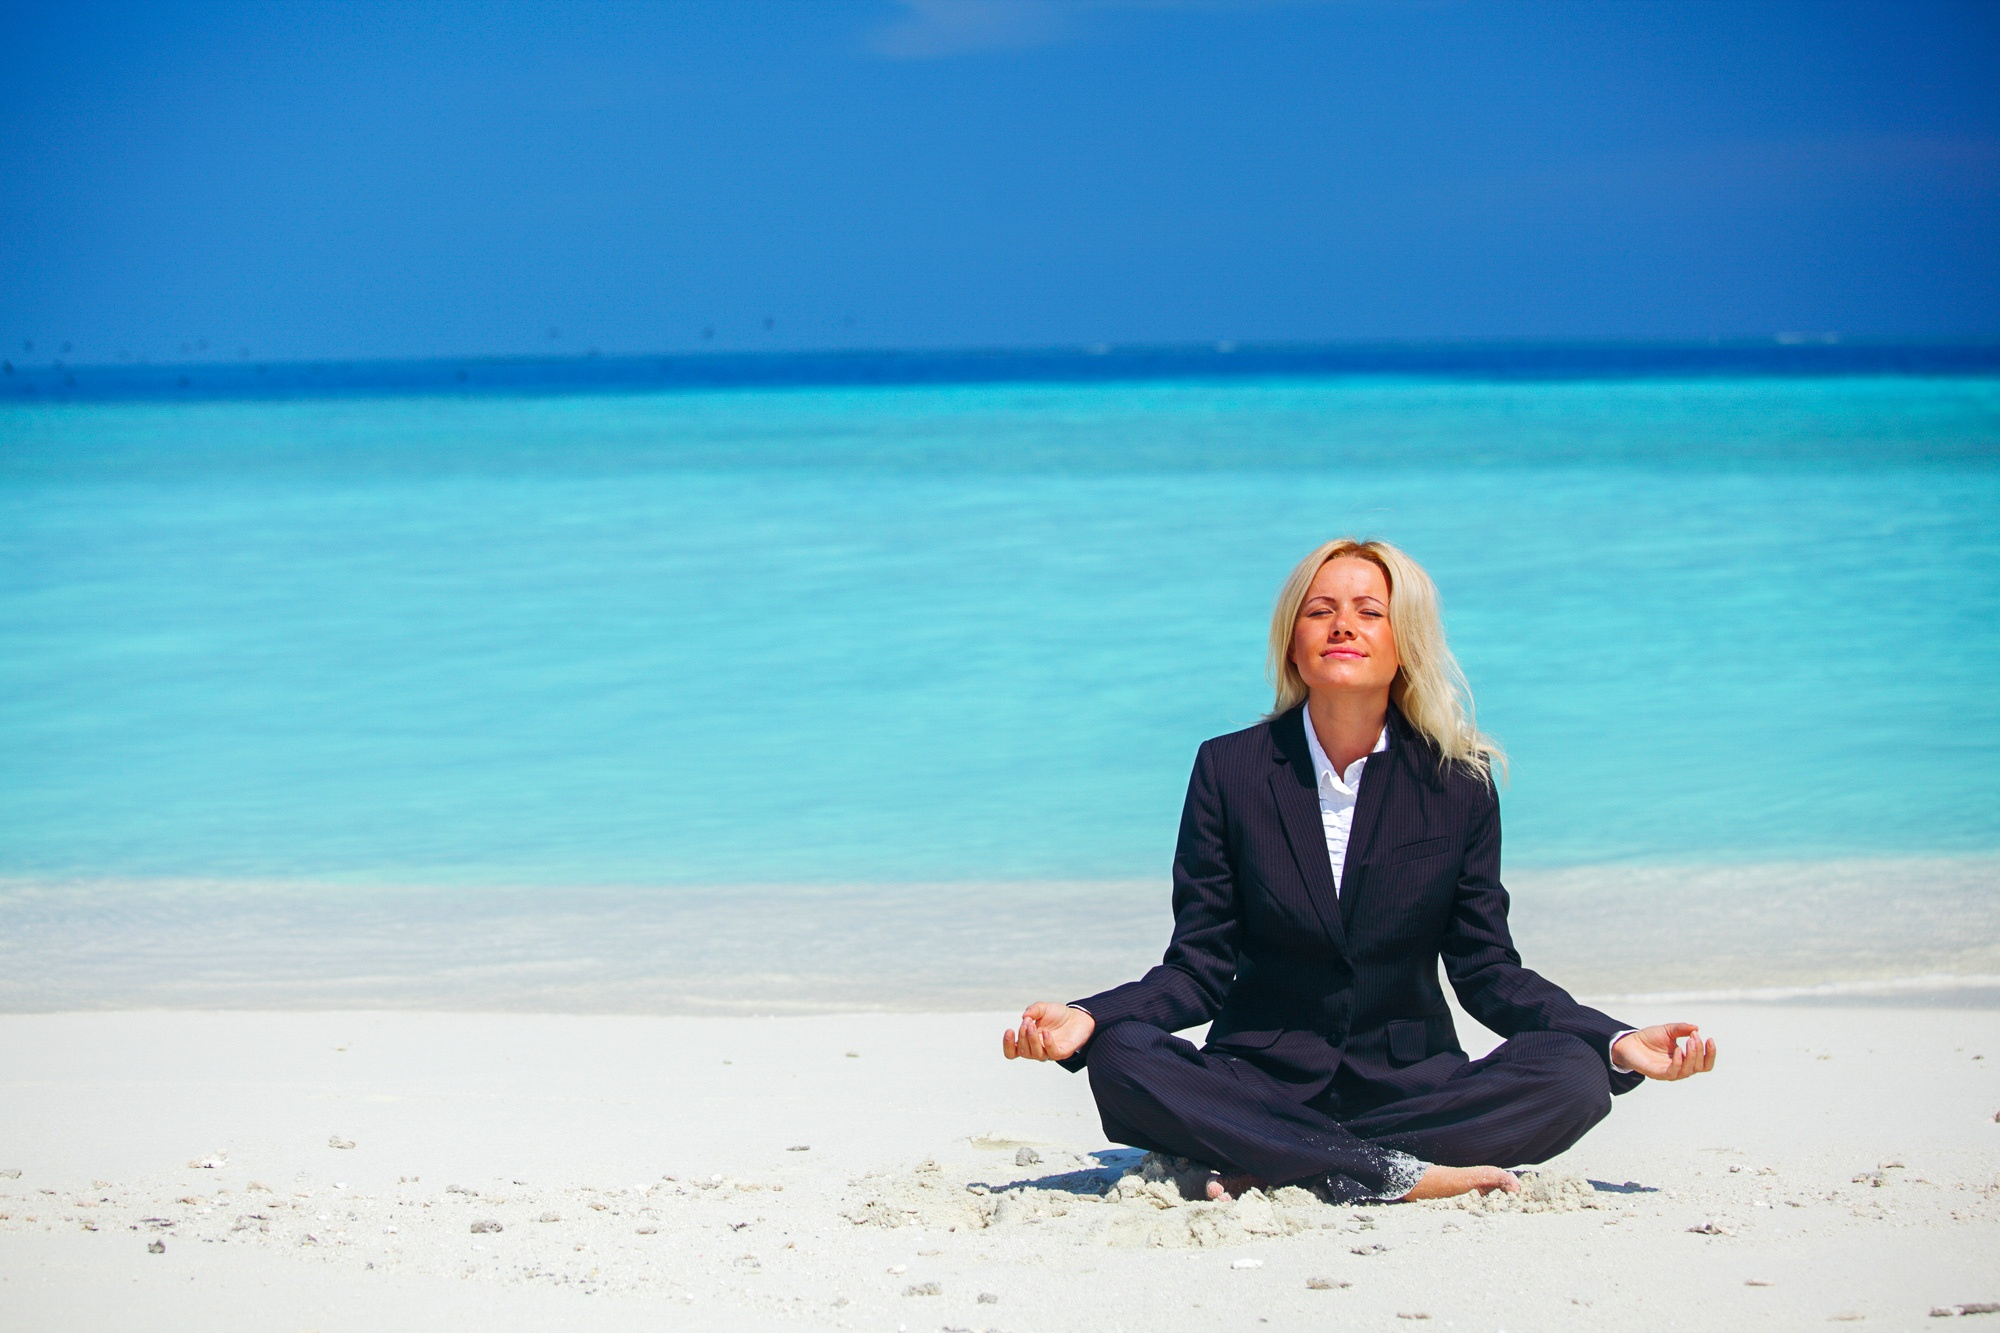 Minimize stress while maximizing productivity and fun during your business travel